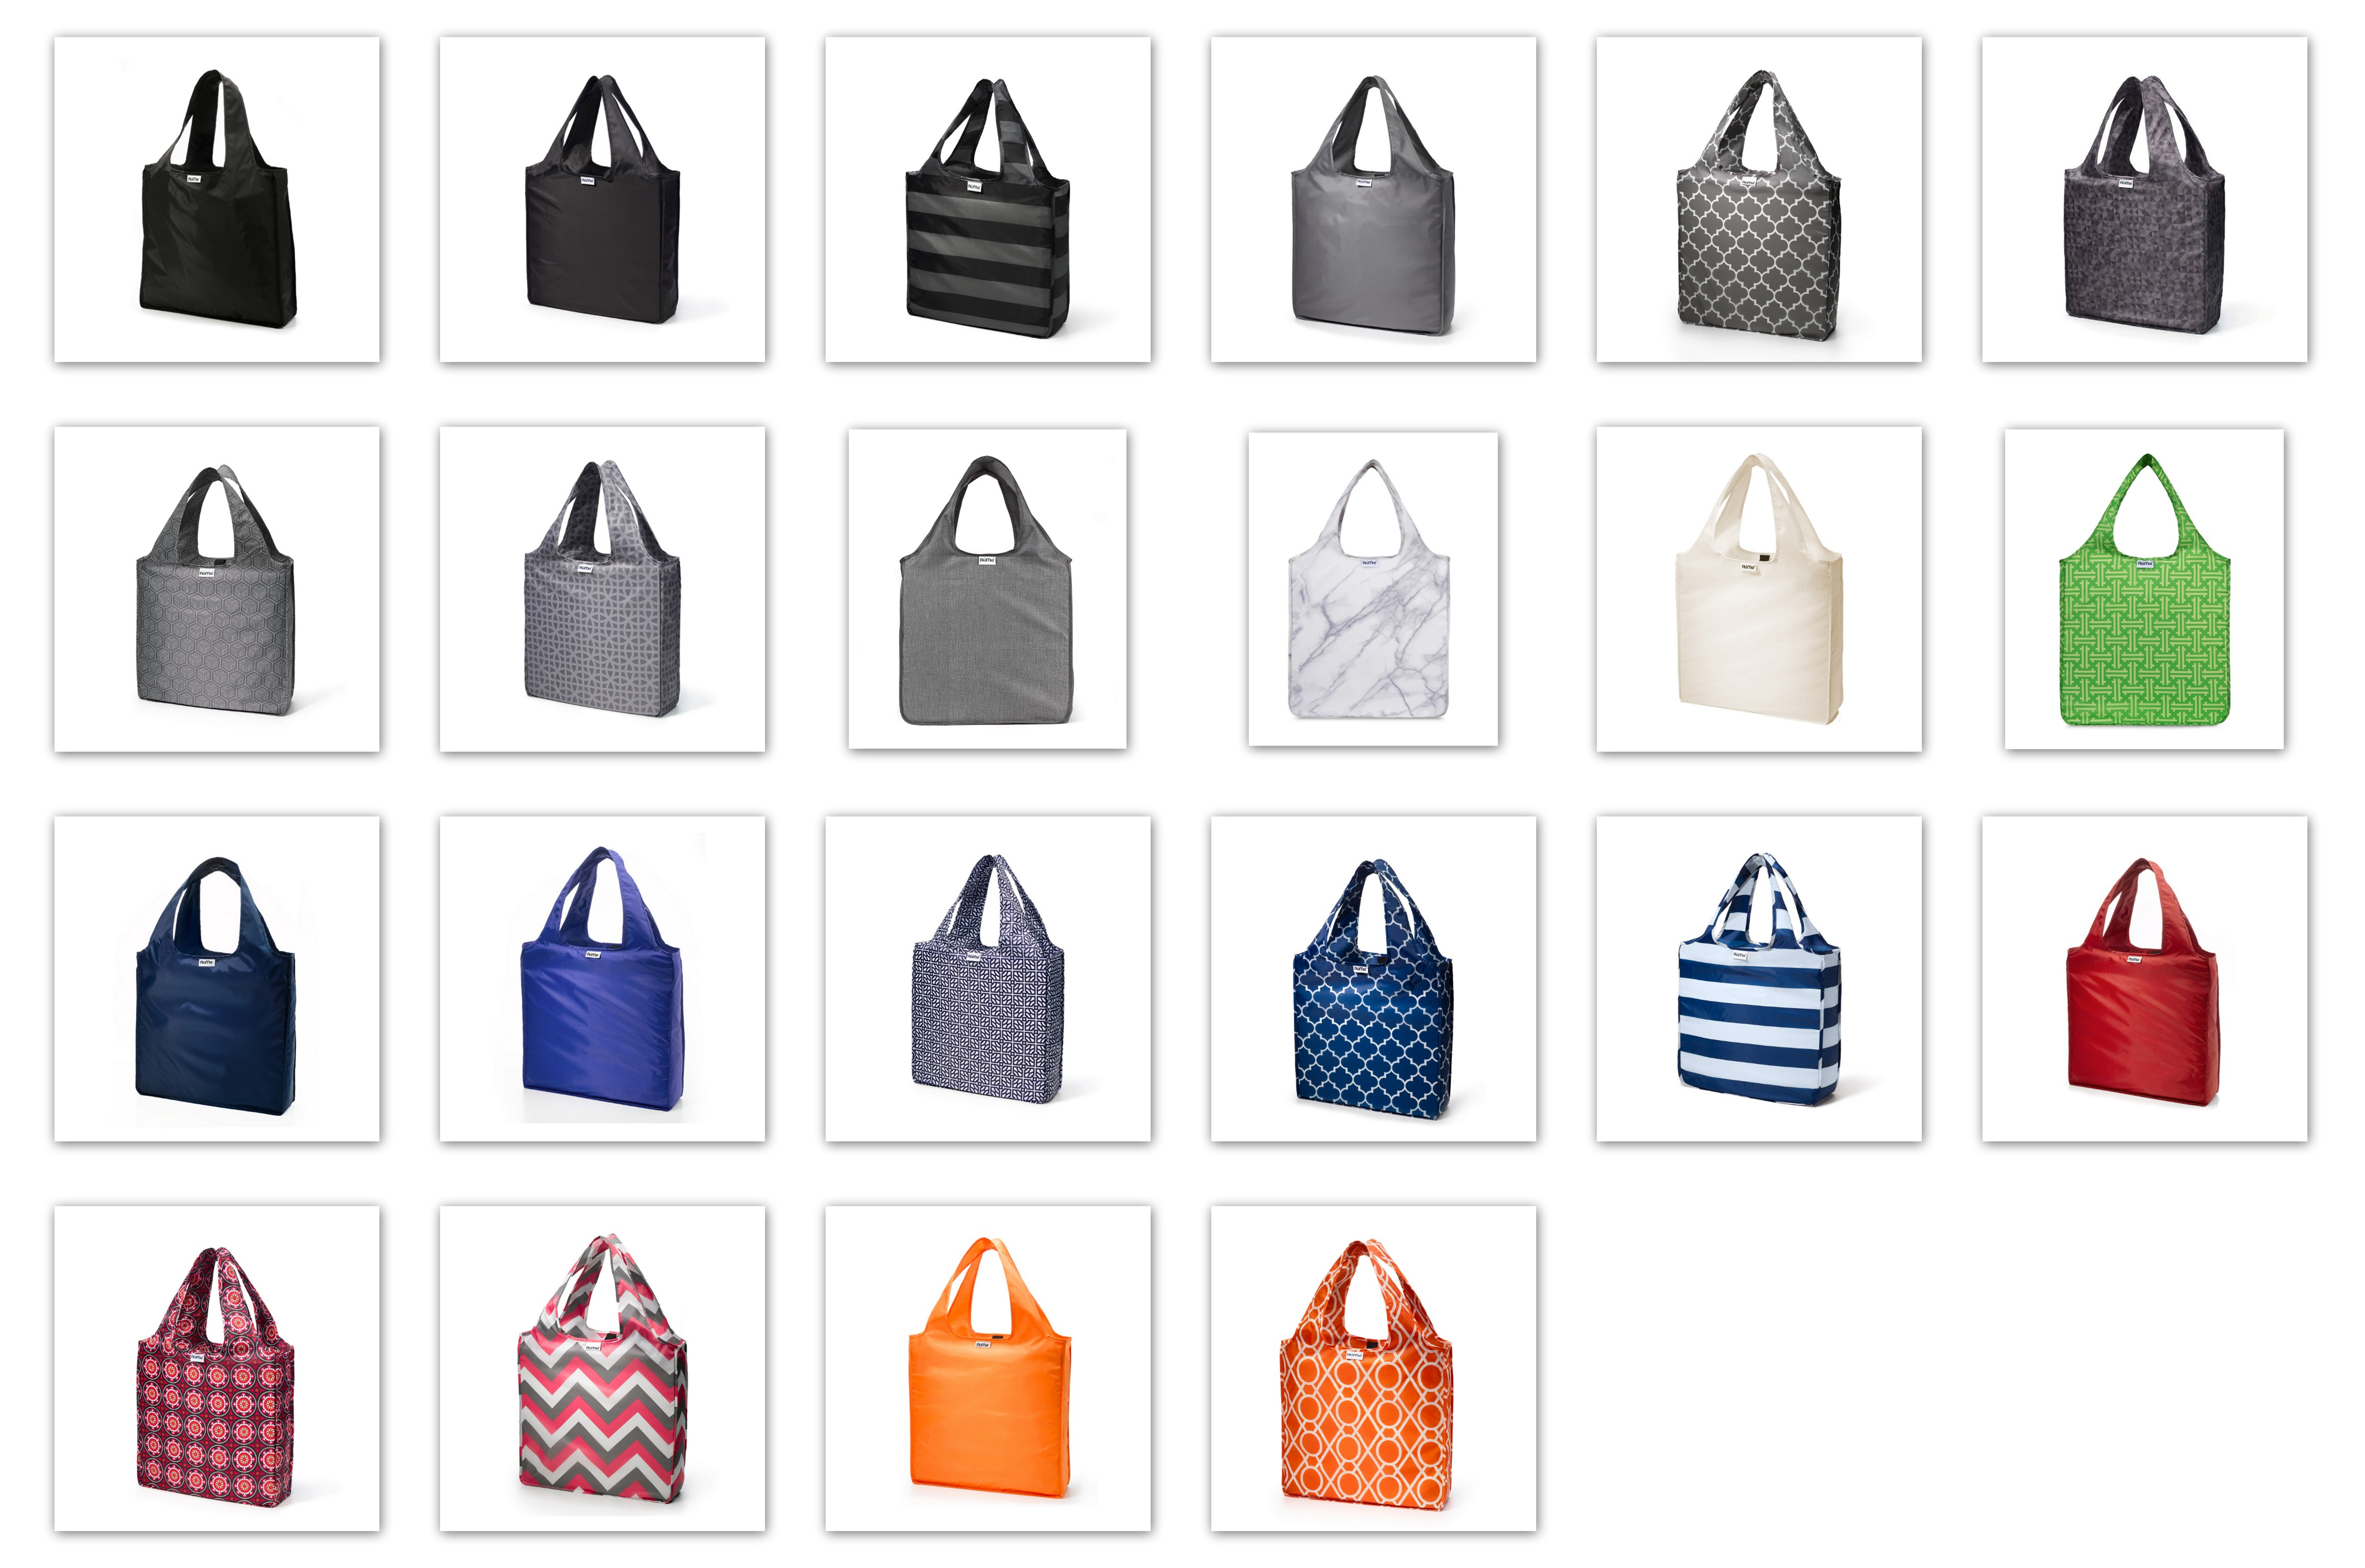 RuMe 100018 Classic Medium Tote from NYFifth